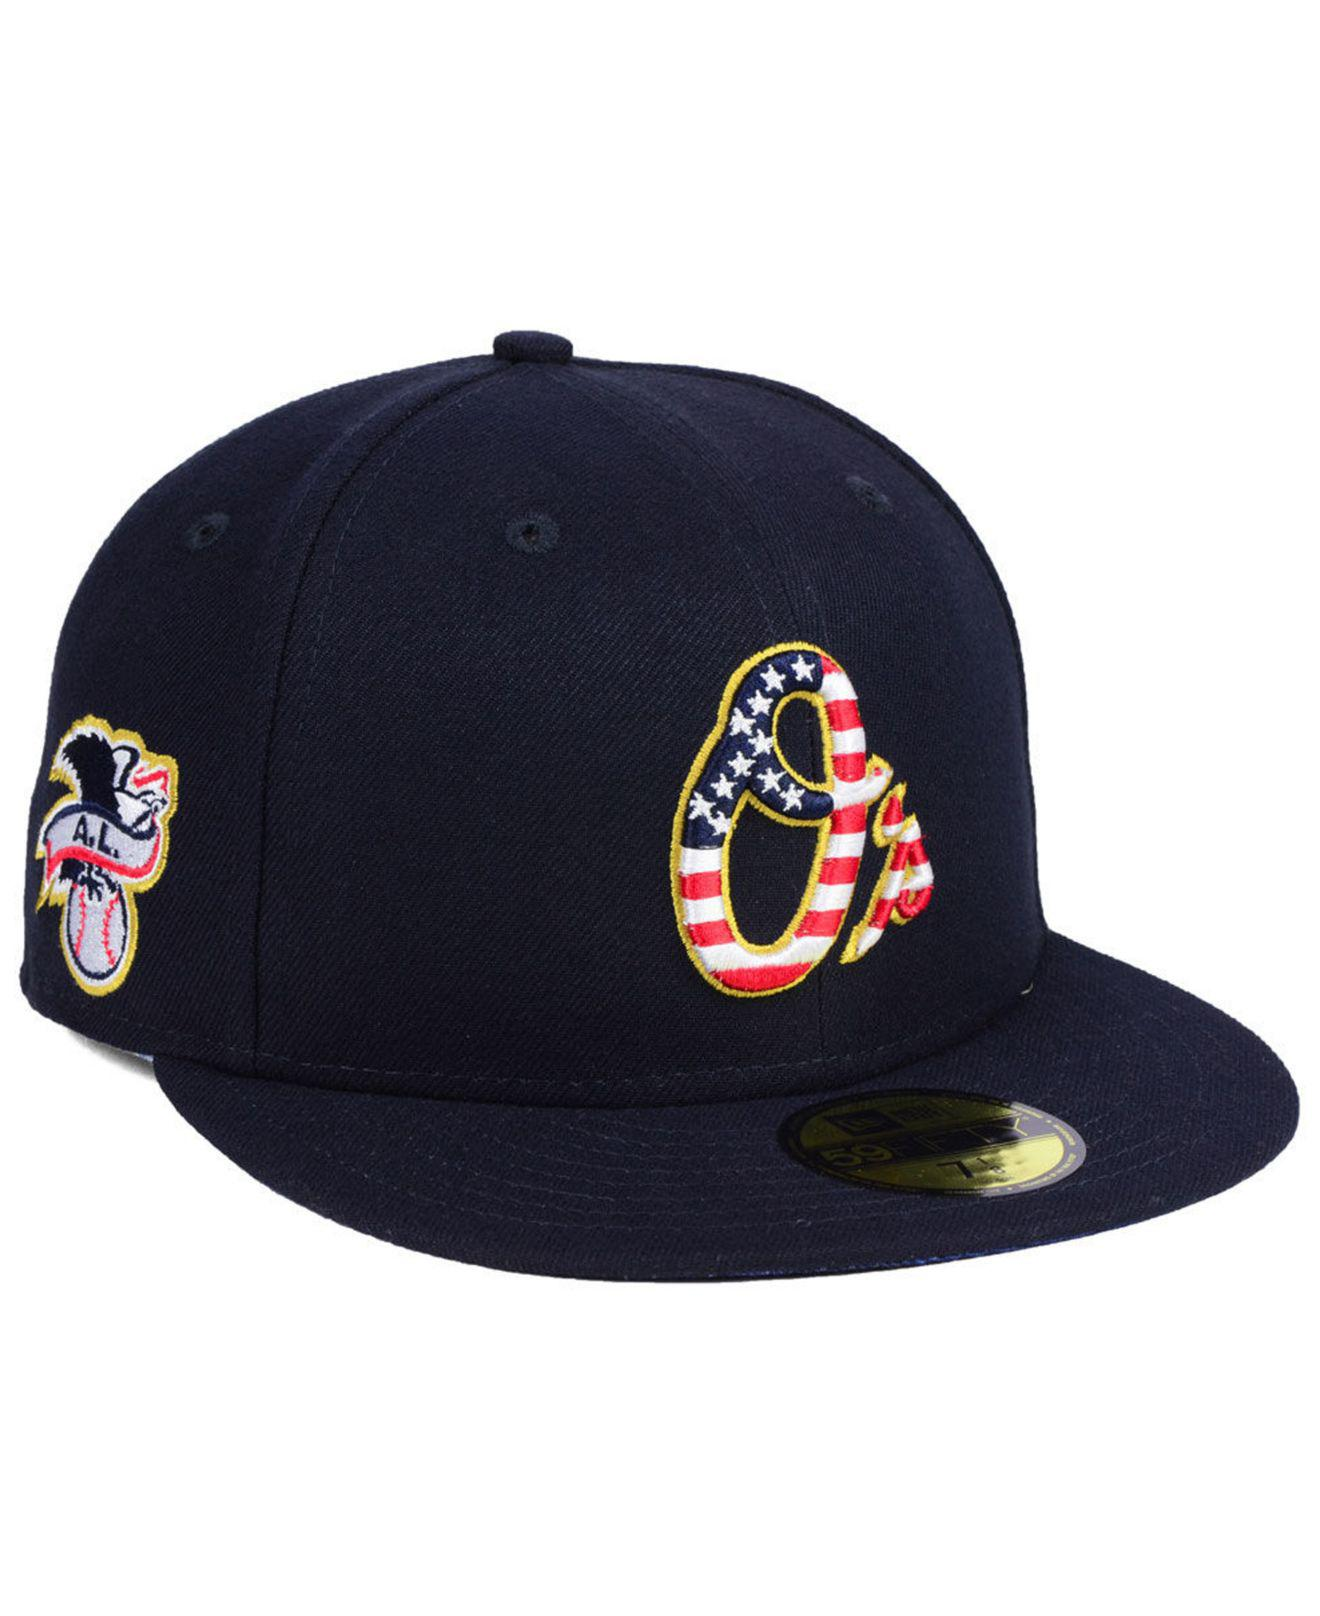 Lyst - KTZ Baltimore Orioles Stars And Stripes 59fifty Fitted Cap in ... 6a707cb8141e